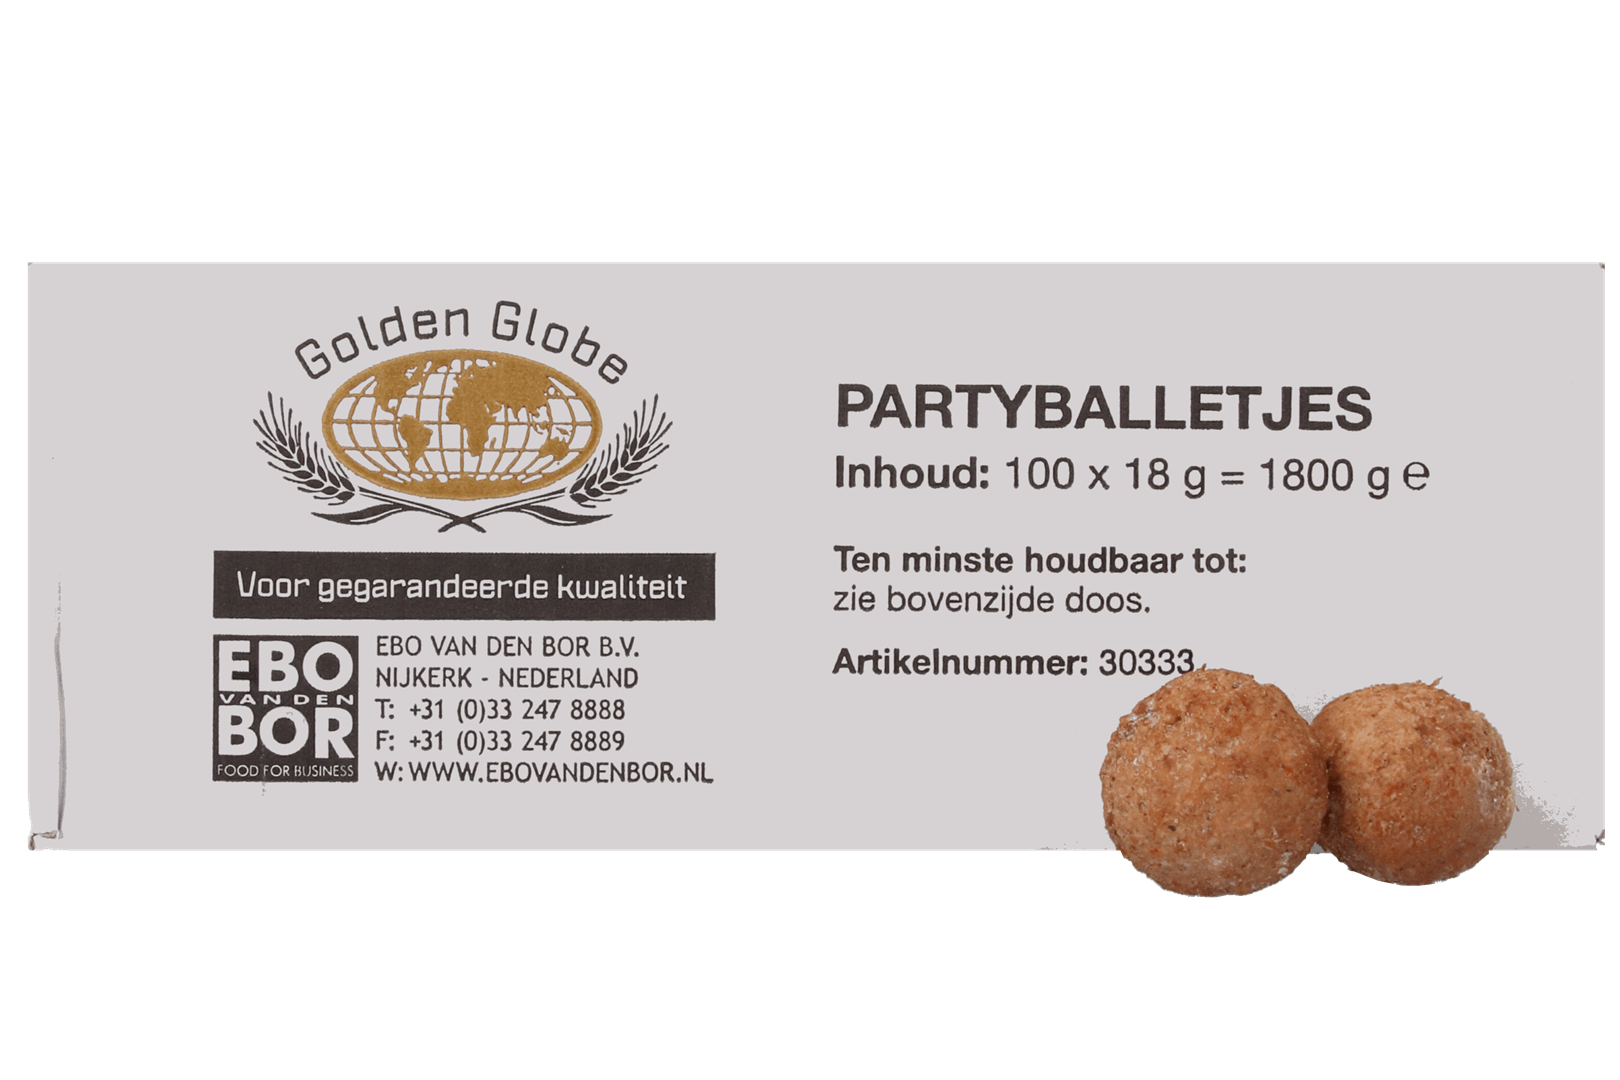 Productafbeelding UNBRANDED PARTYBALLETJE 100X18G doos